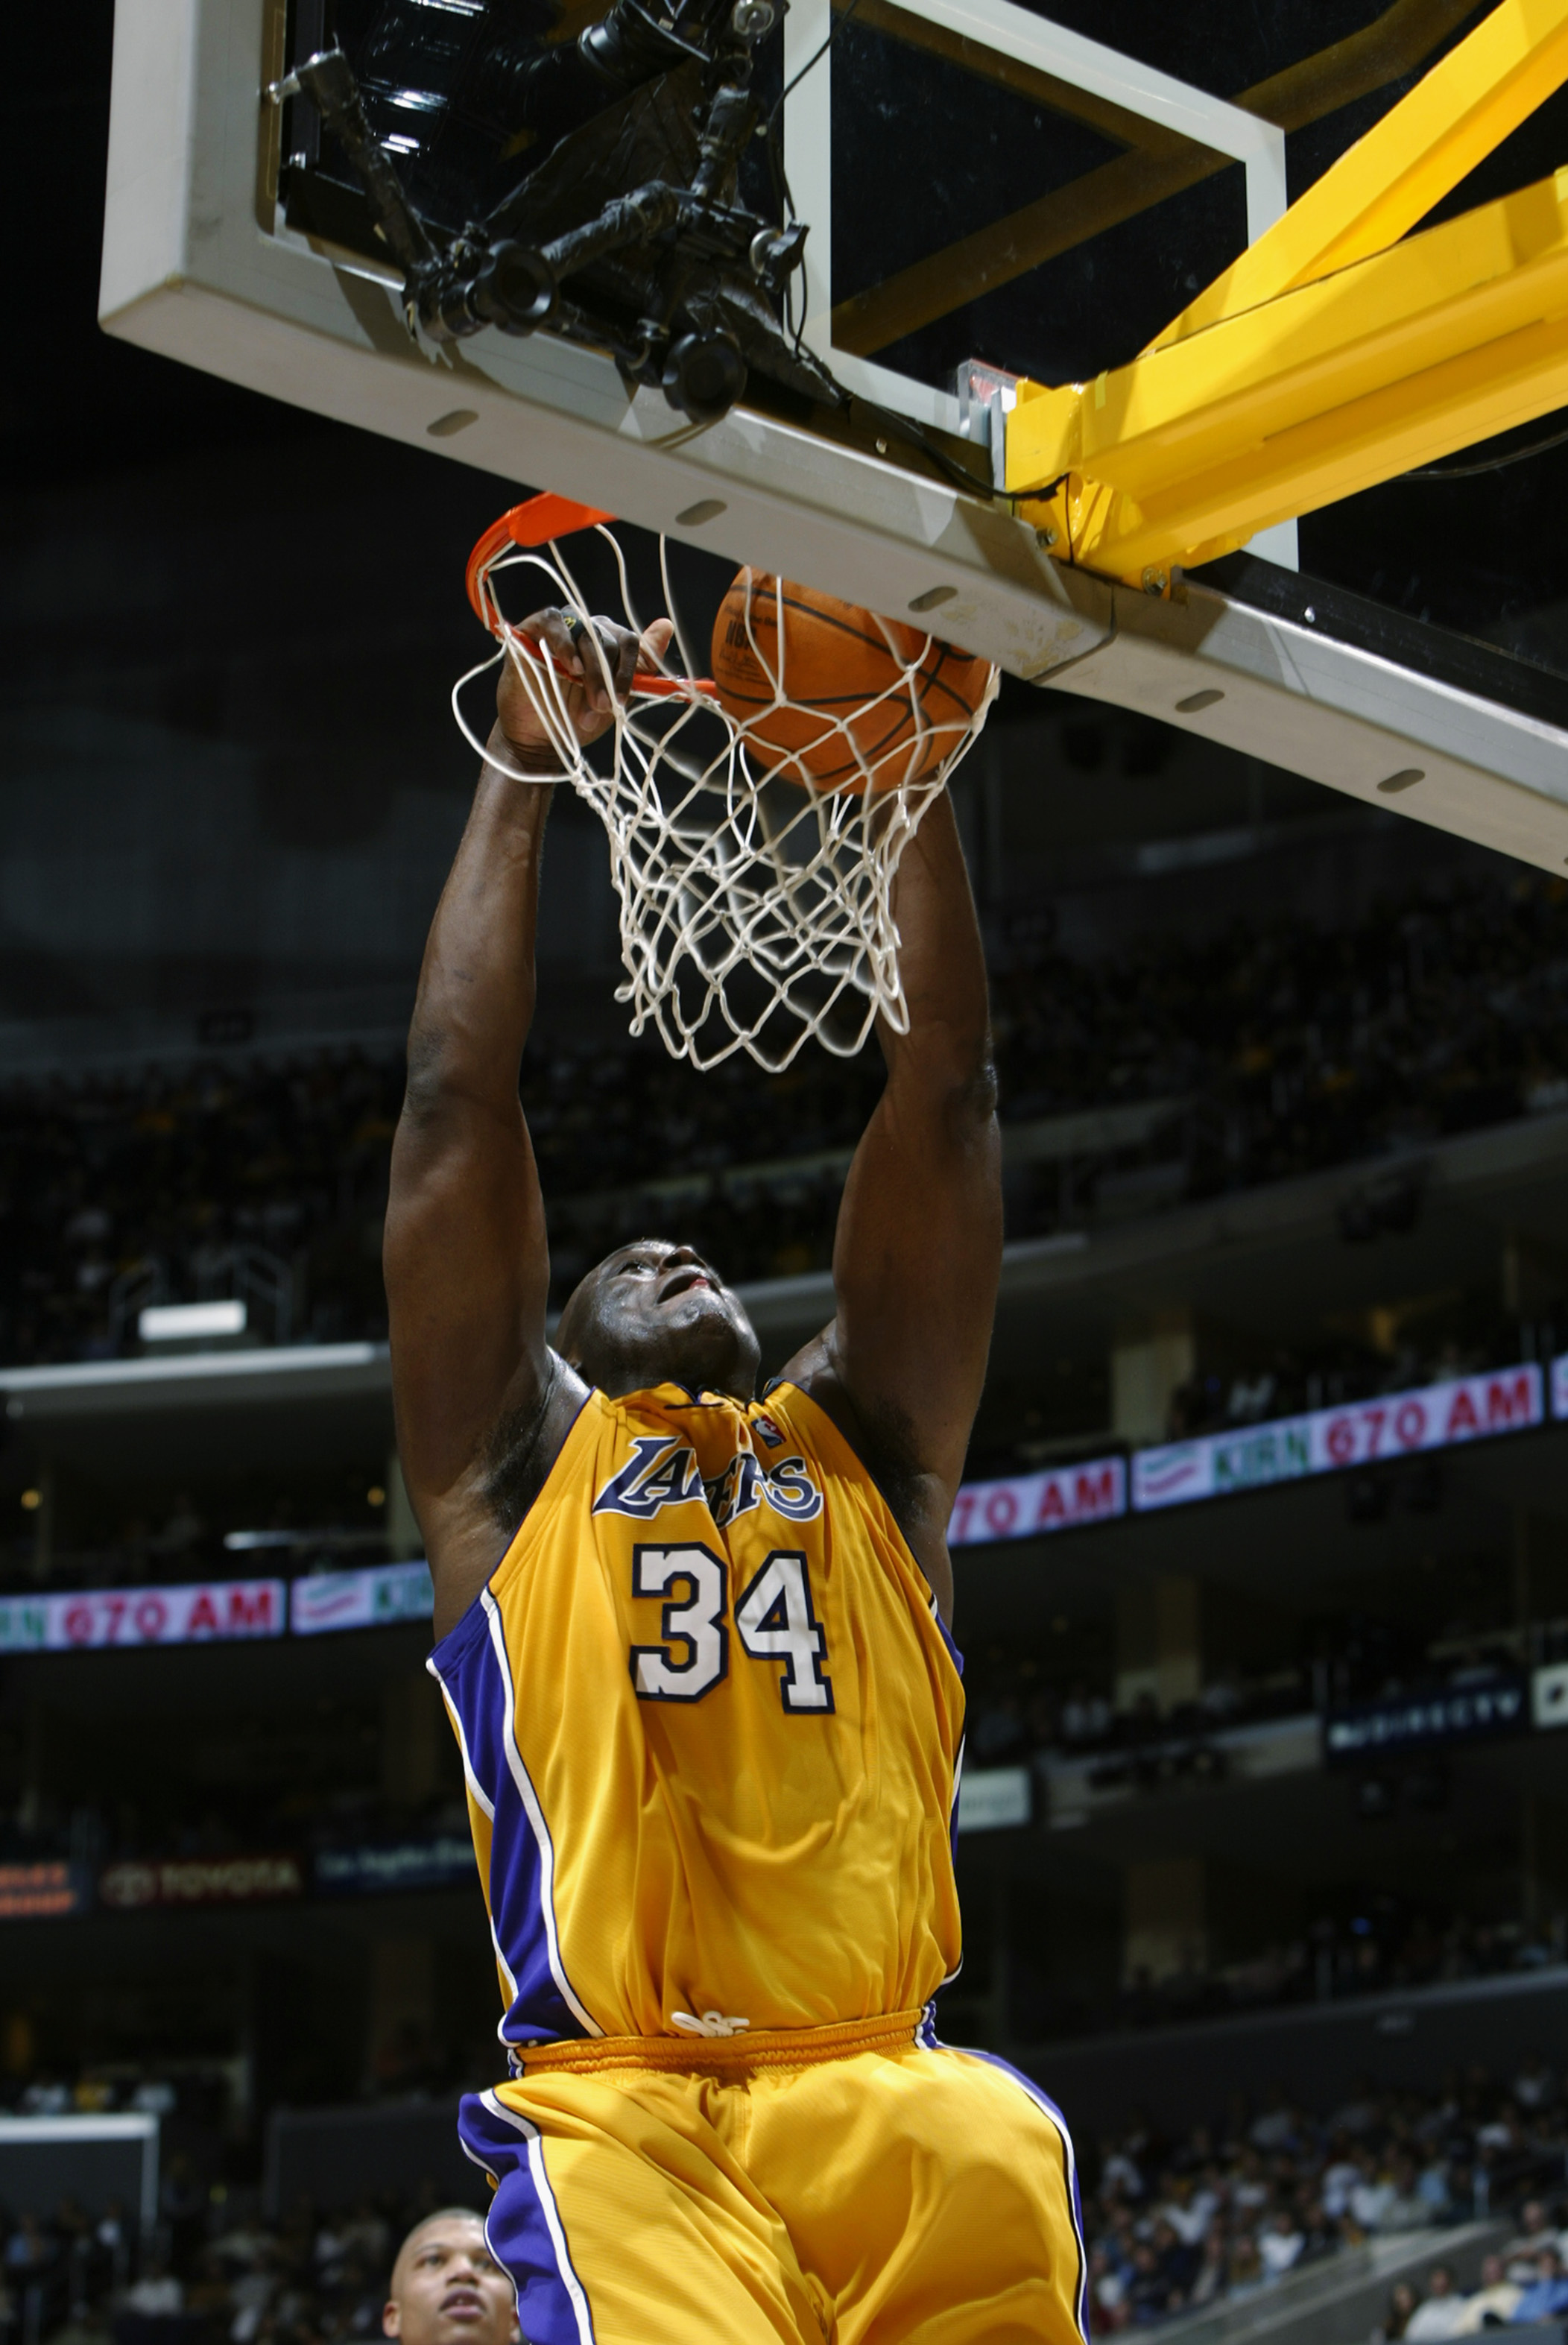 LOS ANGELES - DECEMBER 3:  Shaquille O'Neal #34 of the Los Angeles Lakers slam dunks during the game against the Memphis Grizzlies at Staples Center on December 3, 2002 in Los Angeles, California.  The Lakers won 101-91.  NOTE TO USER: User expressly ackn